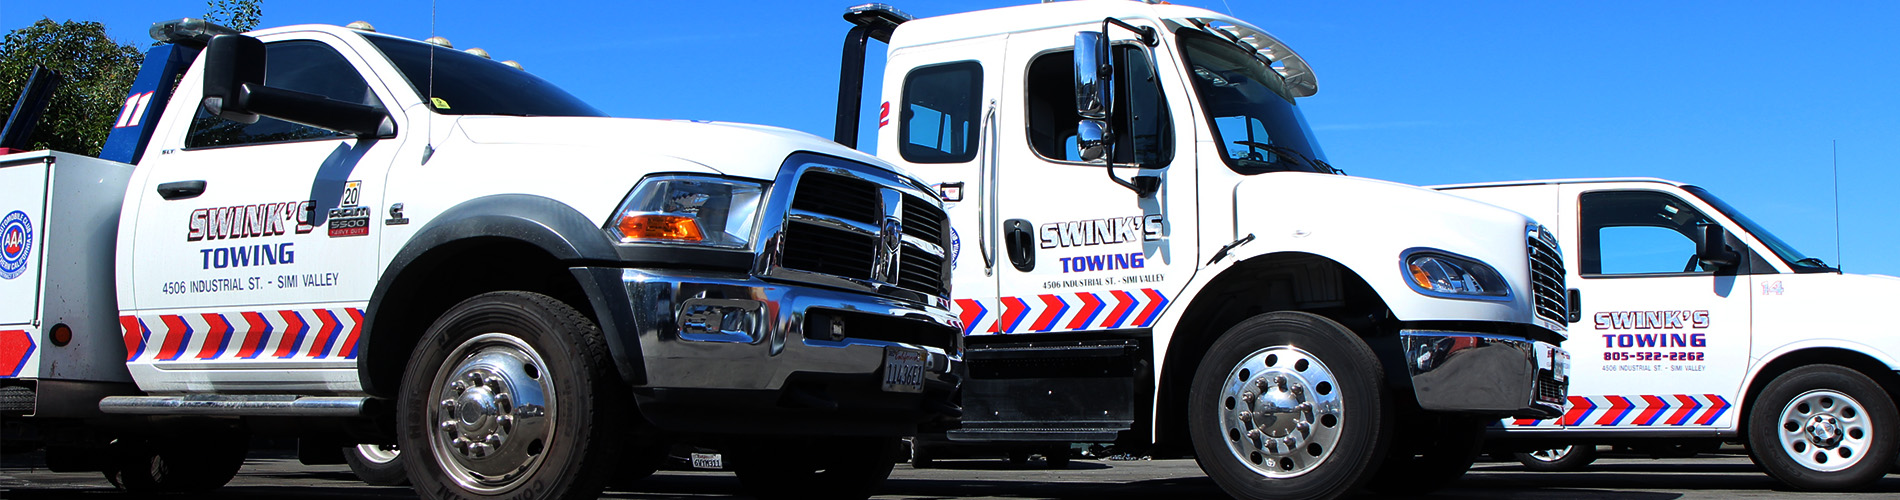 simi-valley-towing-swinks-towing